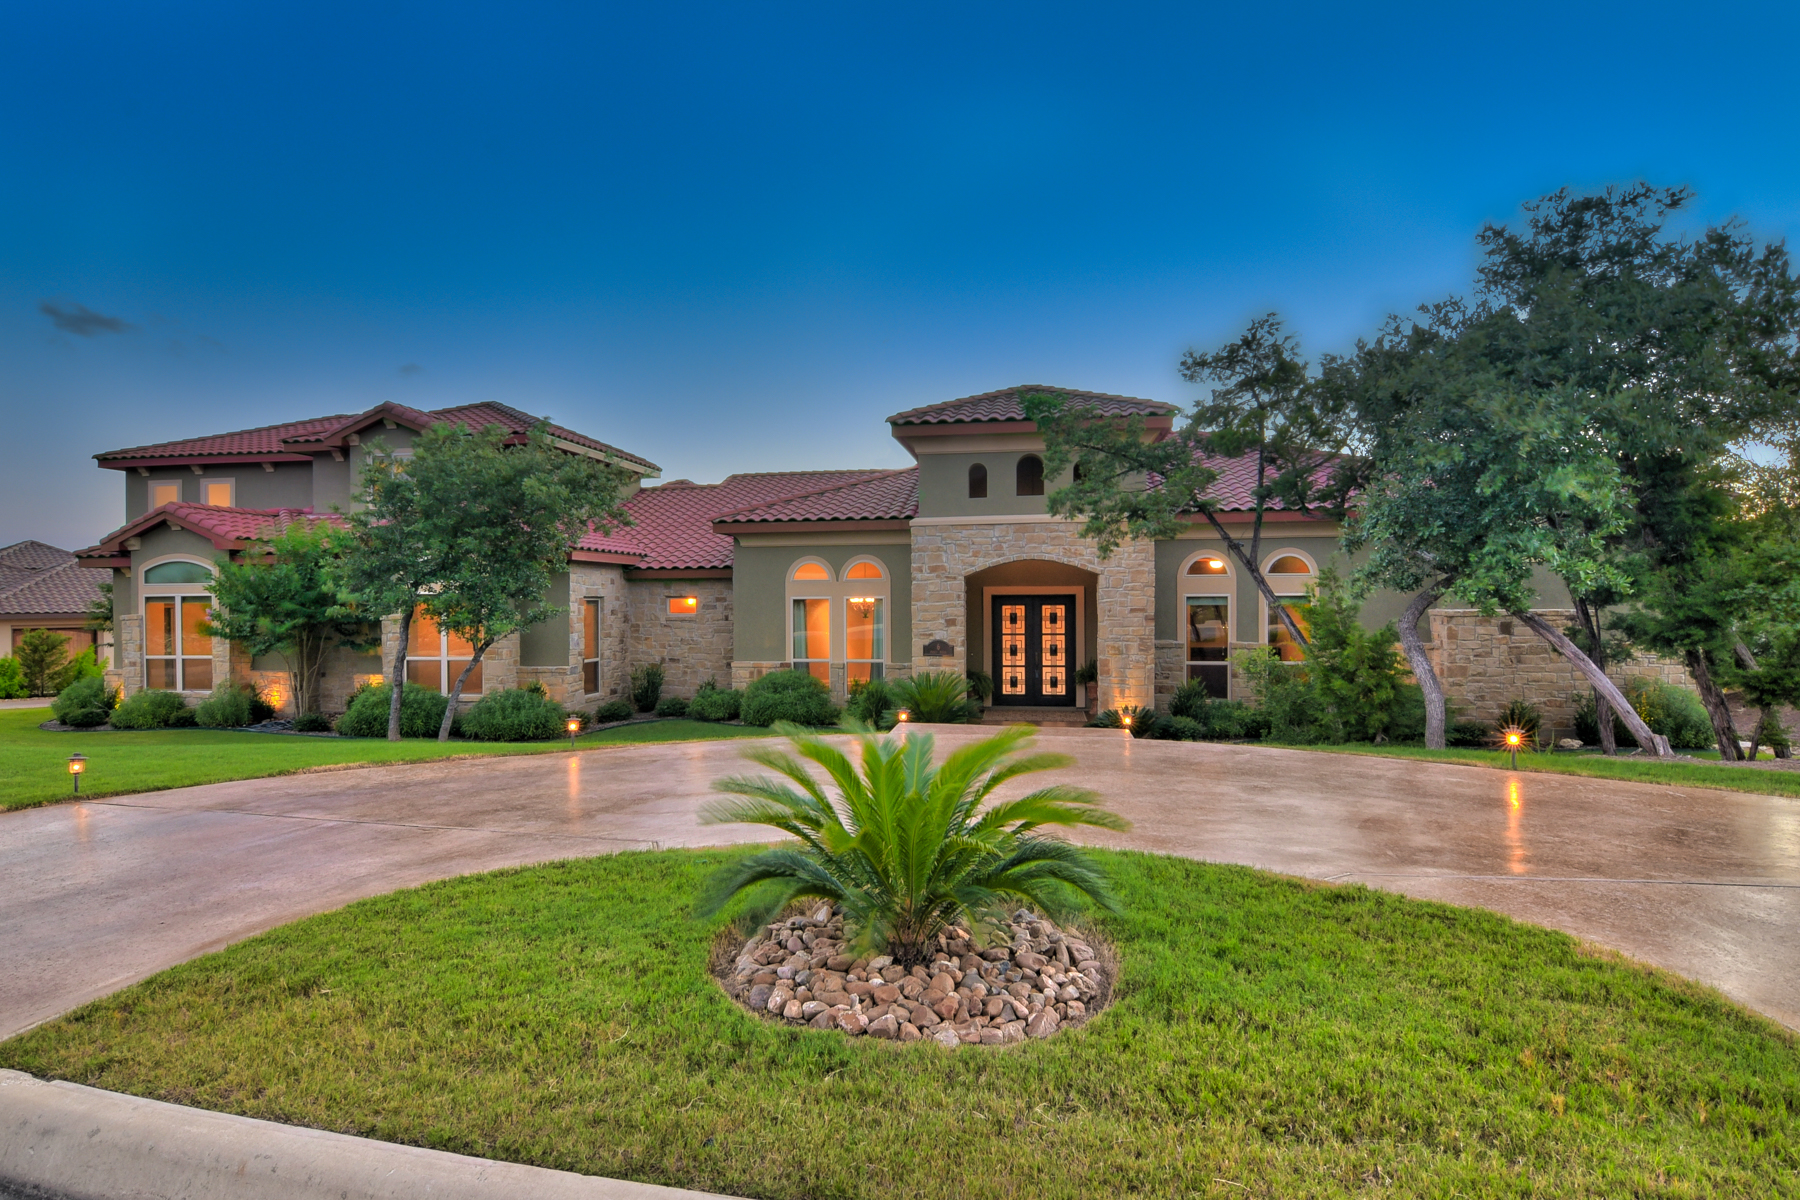 Single Family Home for Sale at Gorgeous Estate in The Dominion 6 Paseo Rioja San Antonio, Texas 78257 United States